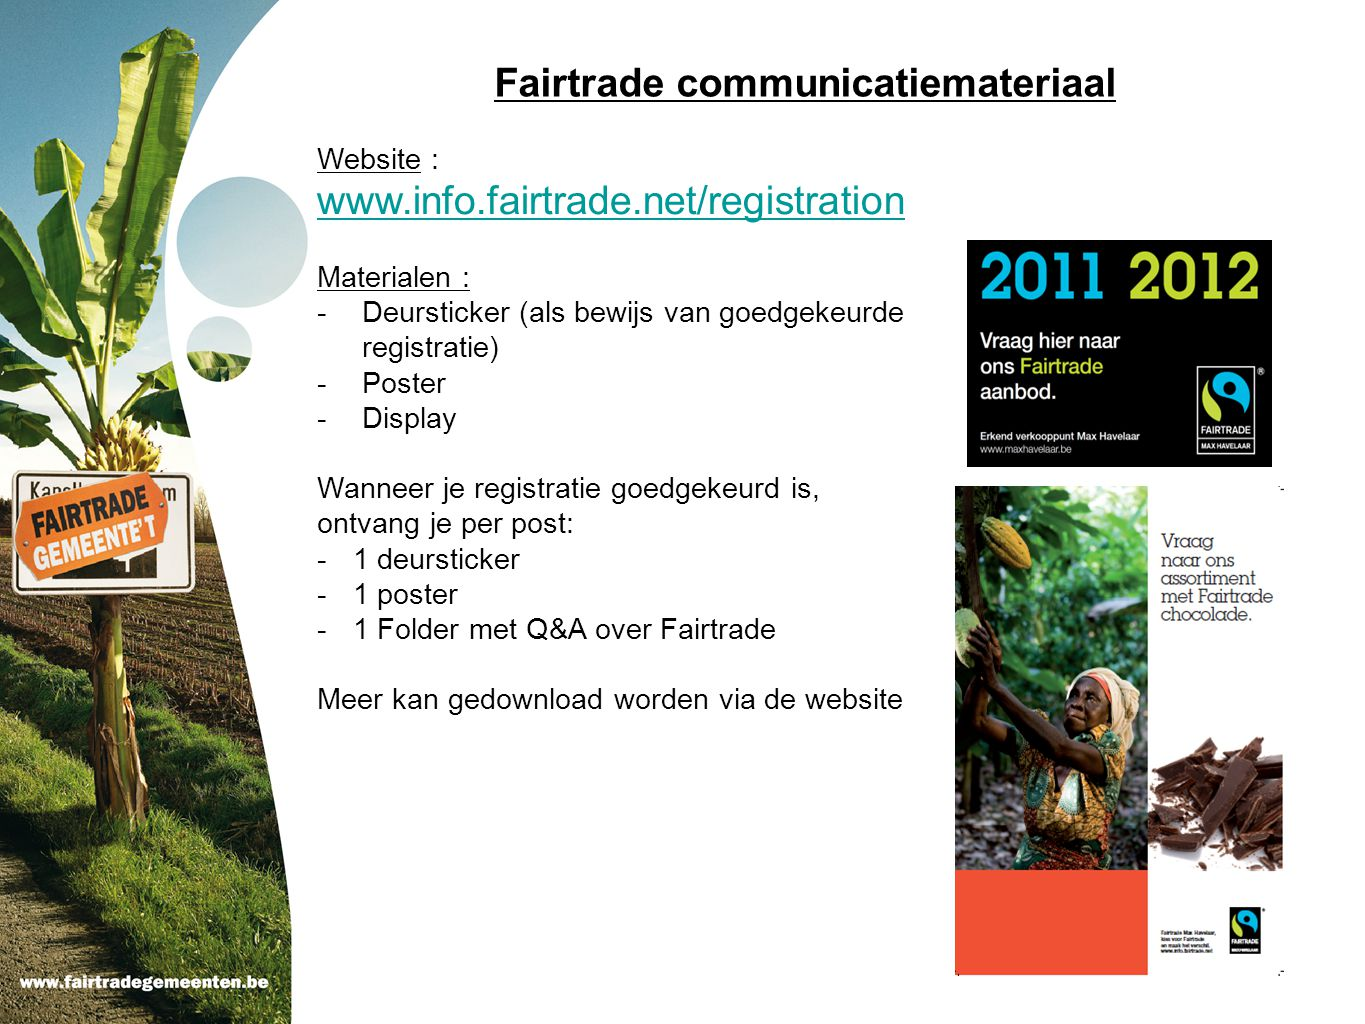 Fairtrade communicatiemateriaal